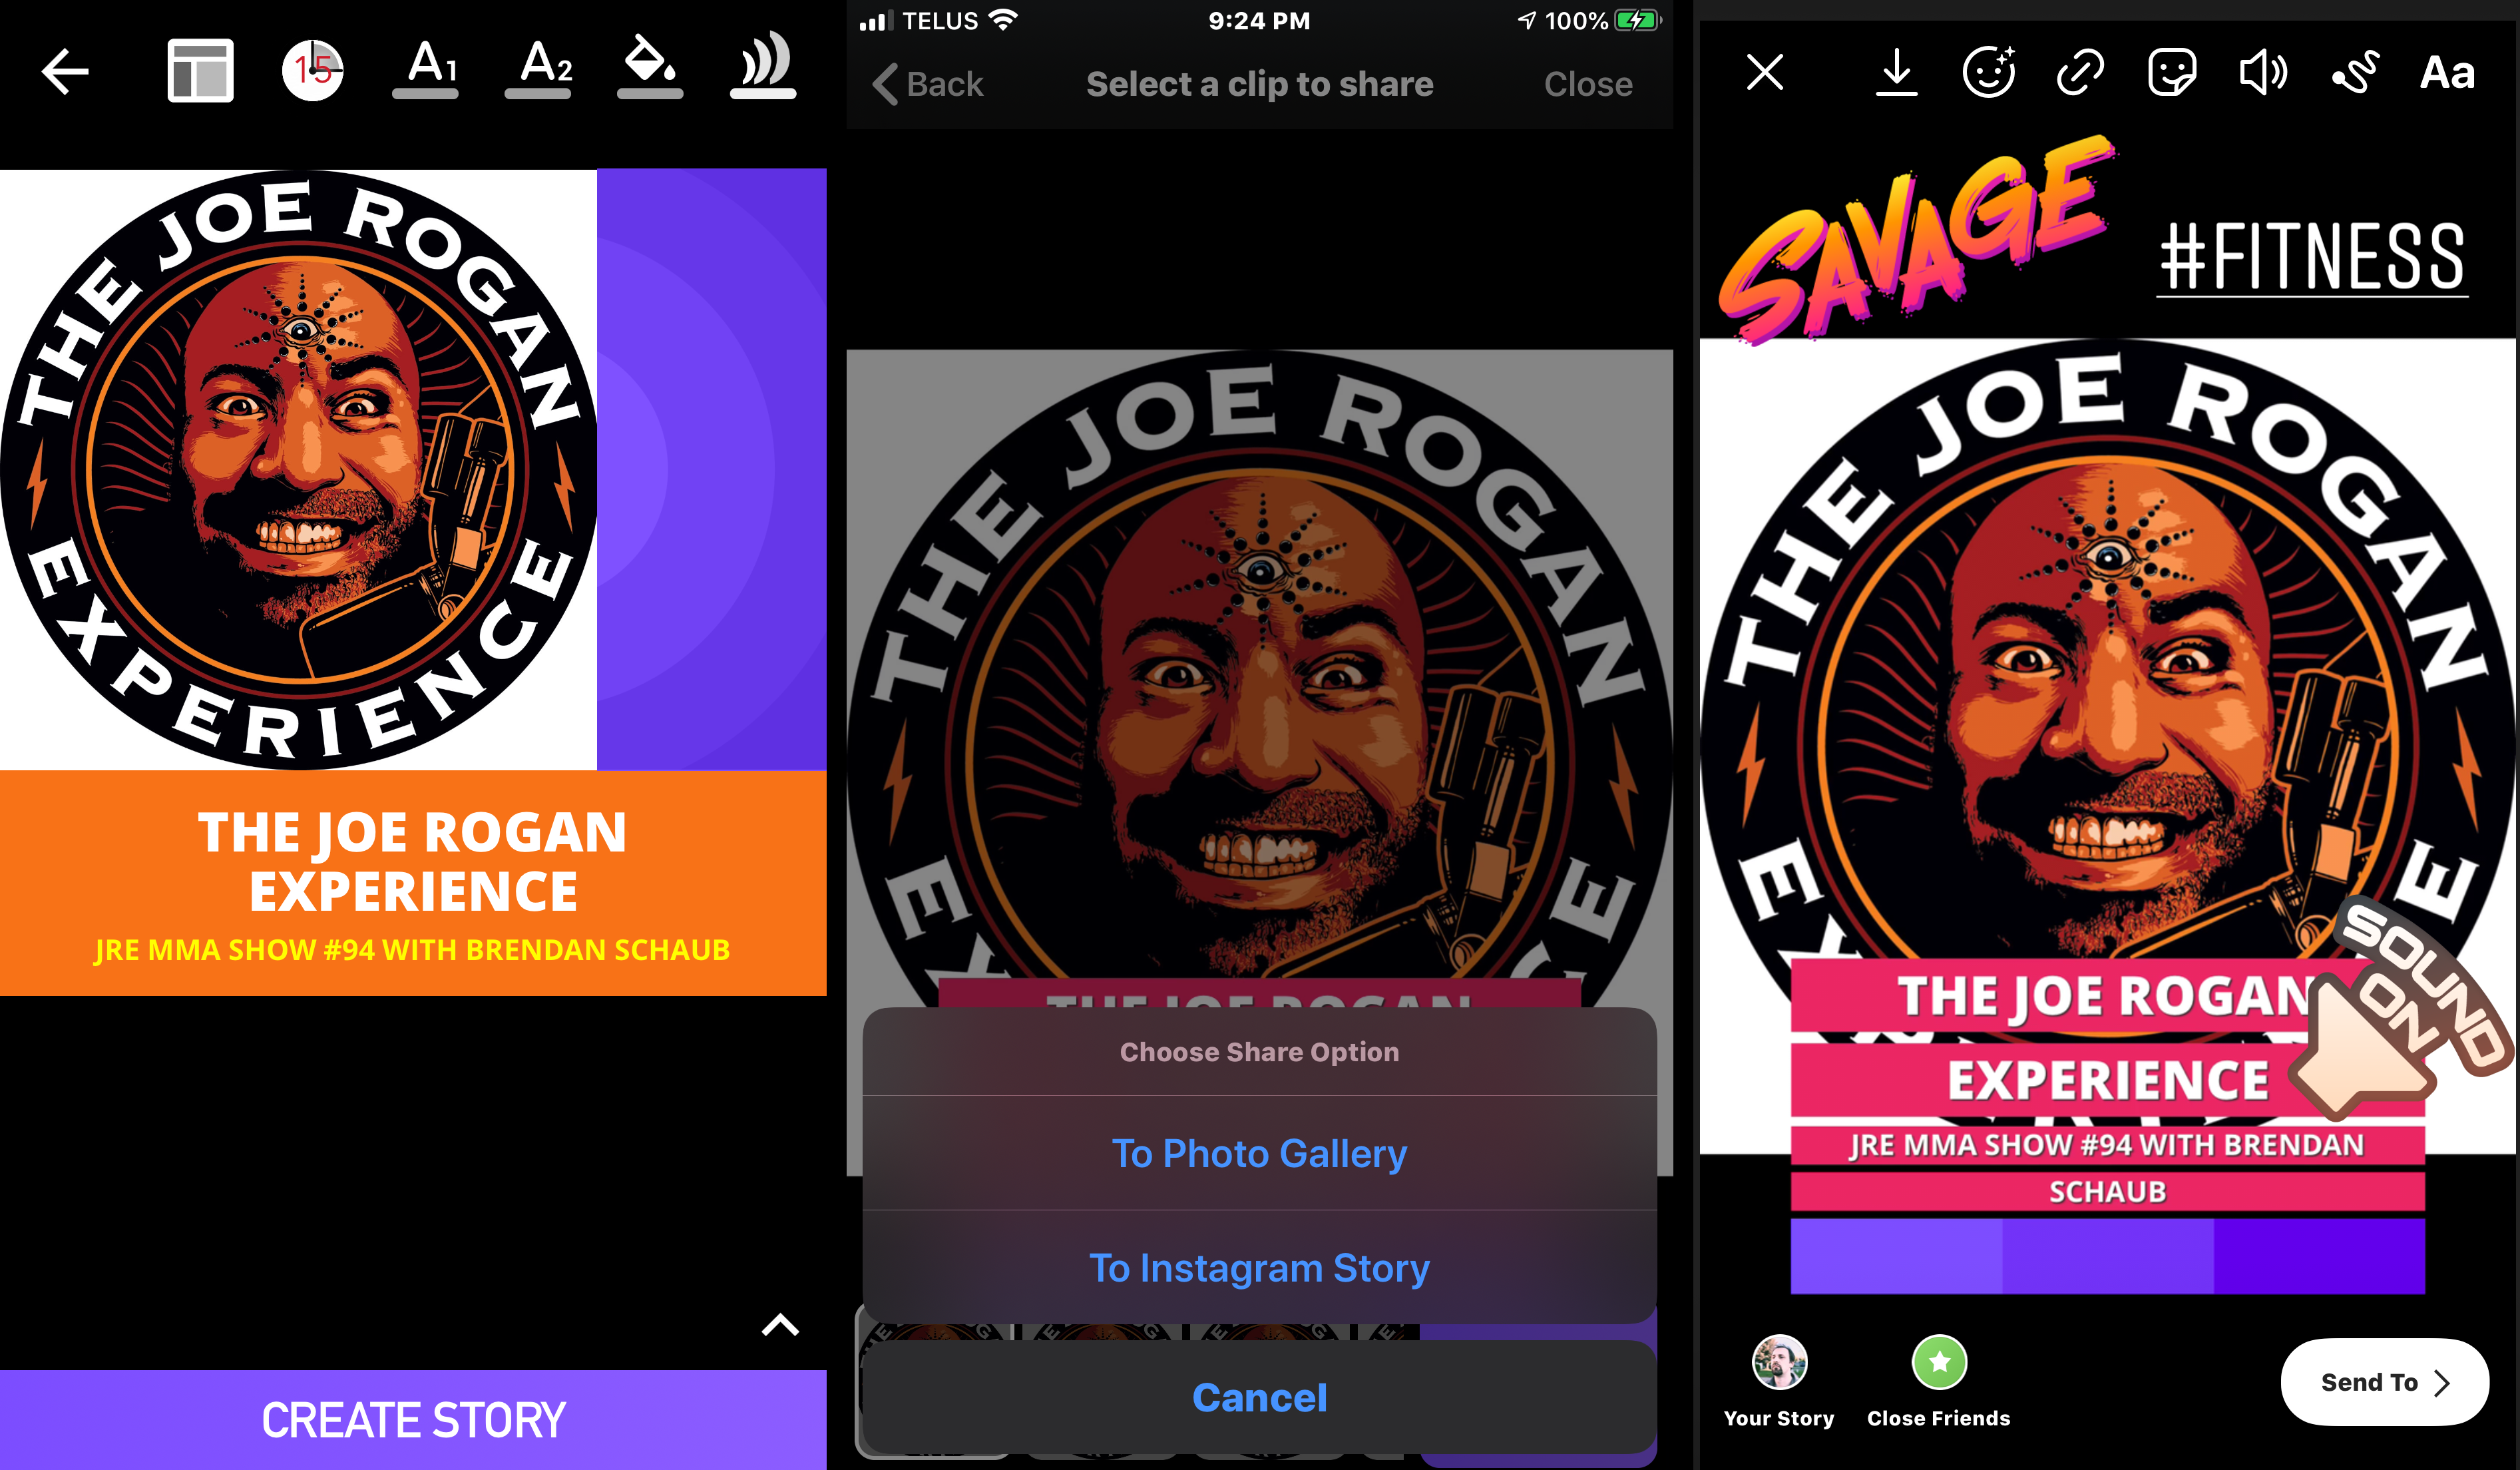 Podcast Video Maker—the share screen lets you share straight to Instagram stories or to the gallery.